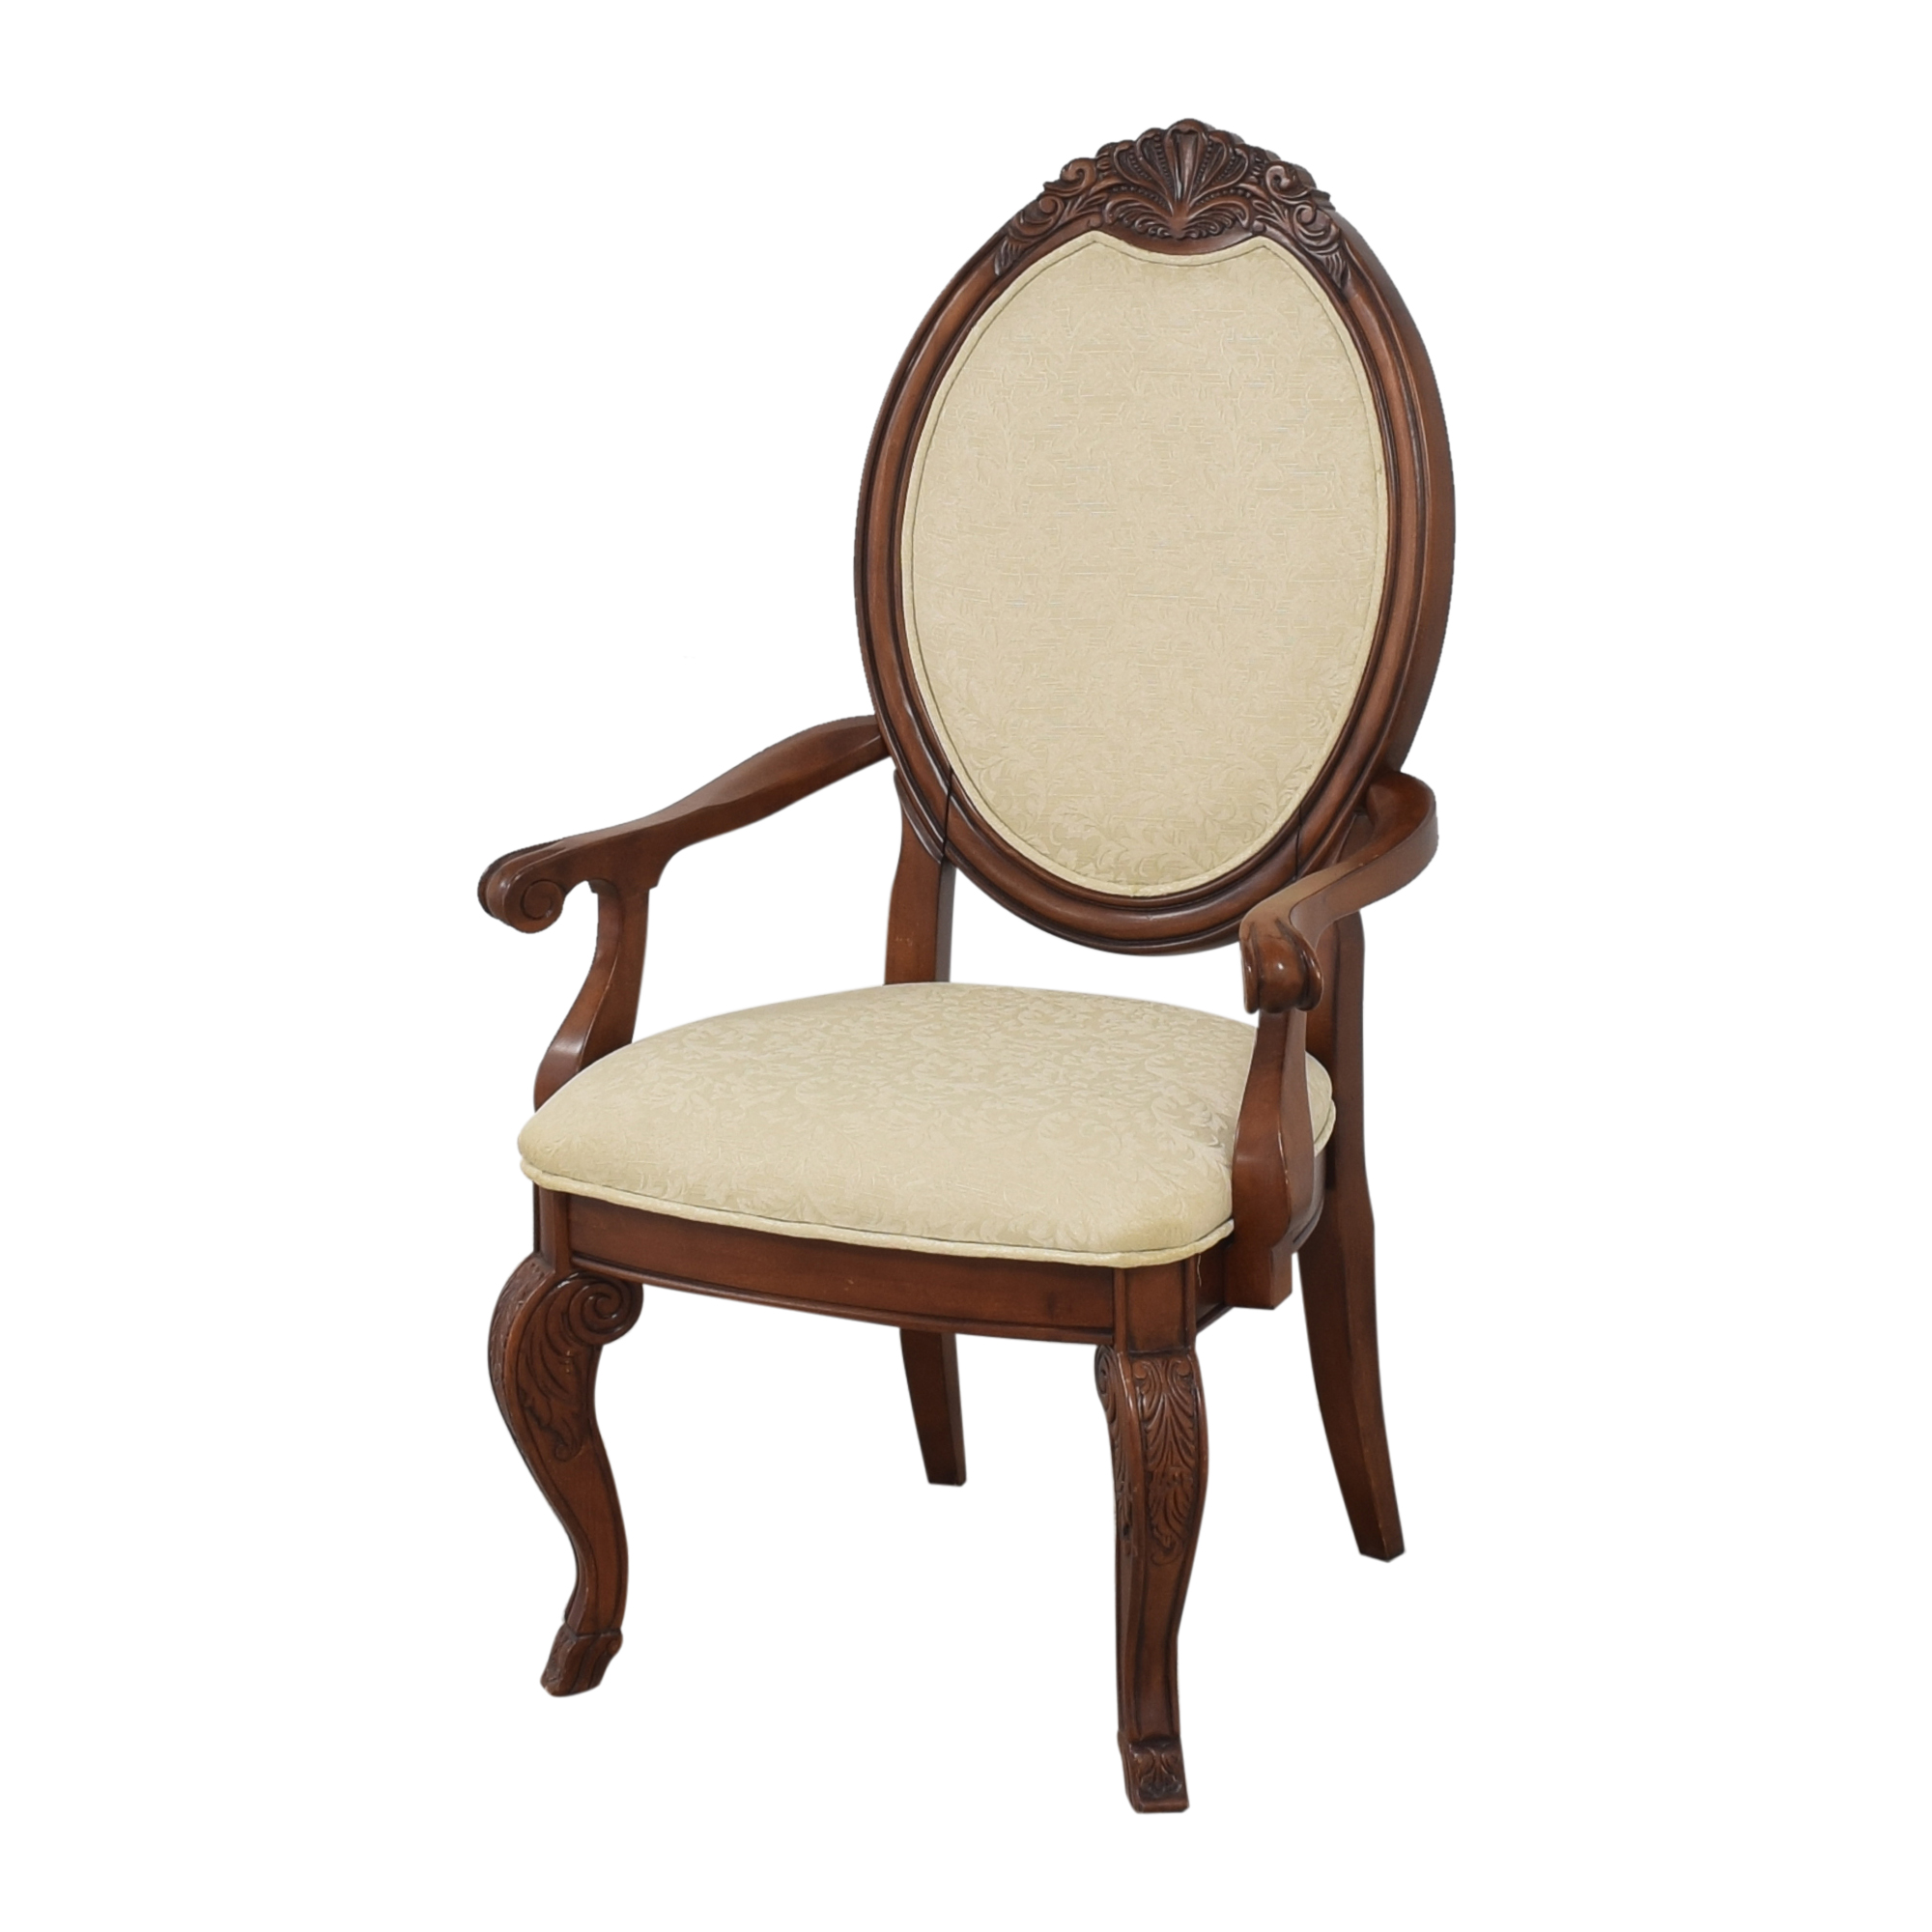 Raymour & Flanigan Raymour & Flanigan Oval Back Dining Arm Chairs for sale